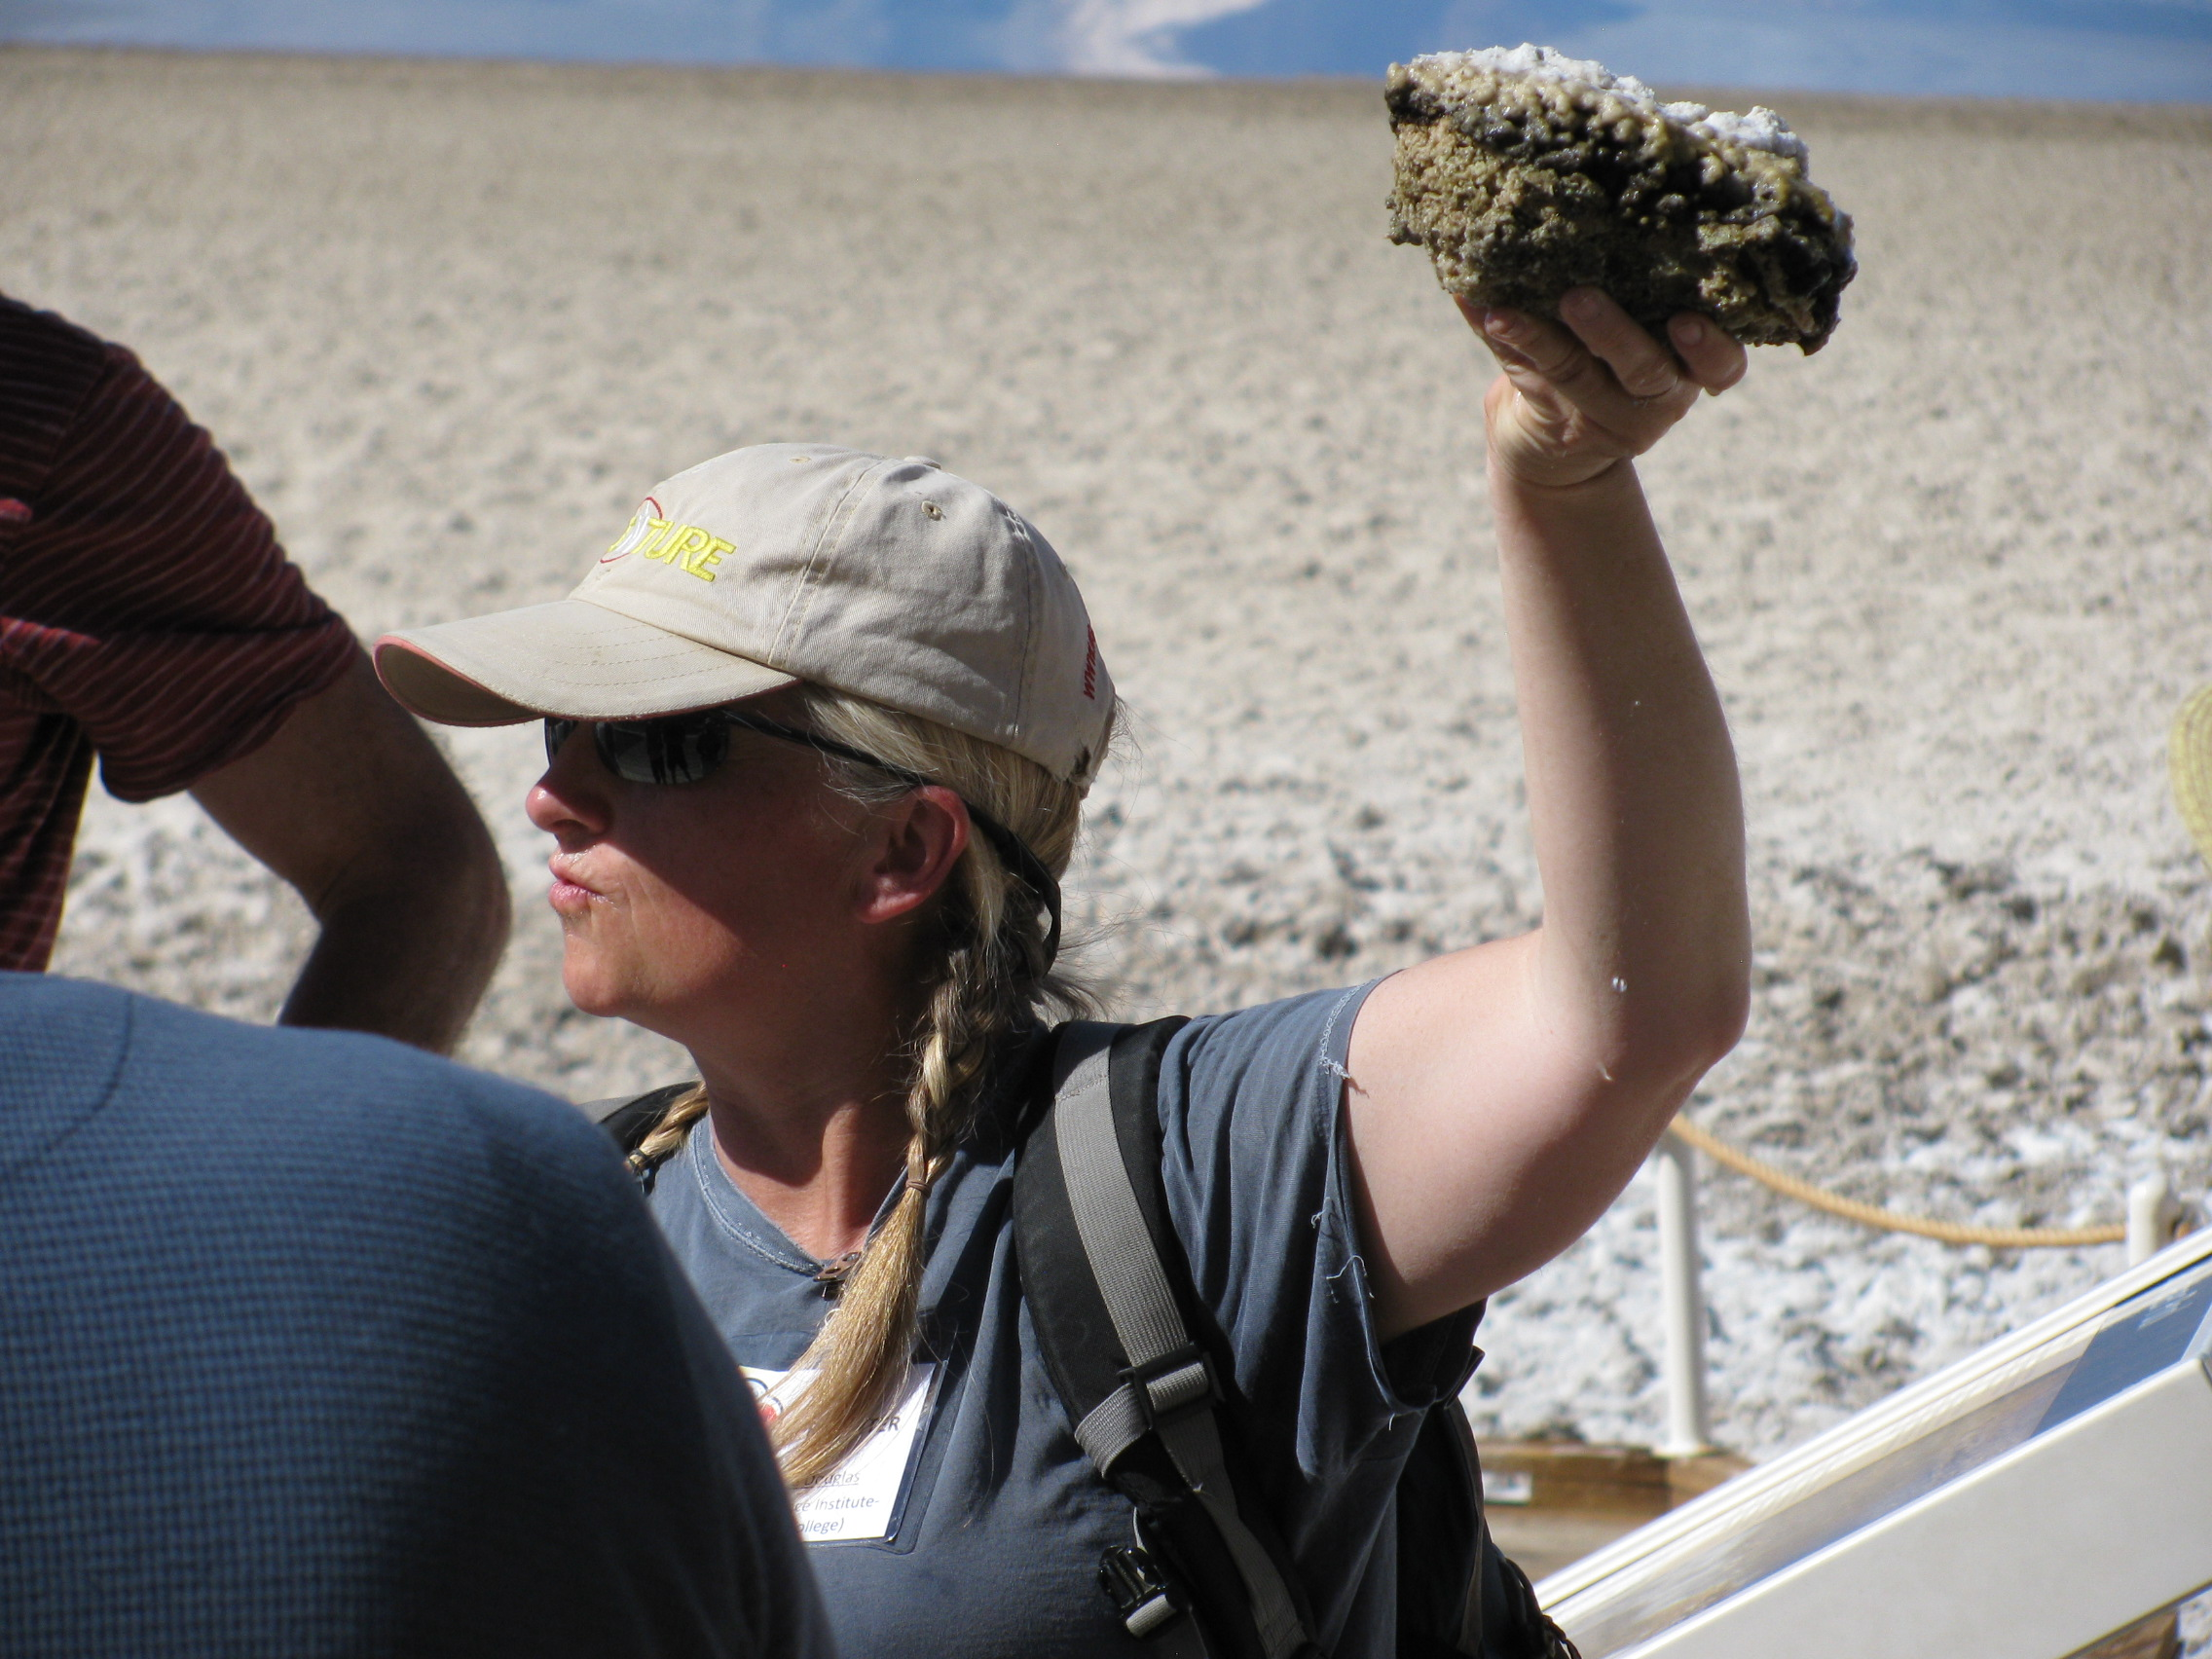 Dr. Susanne Douglas talks about microbial research in the Badwater Basin.